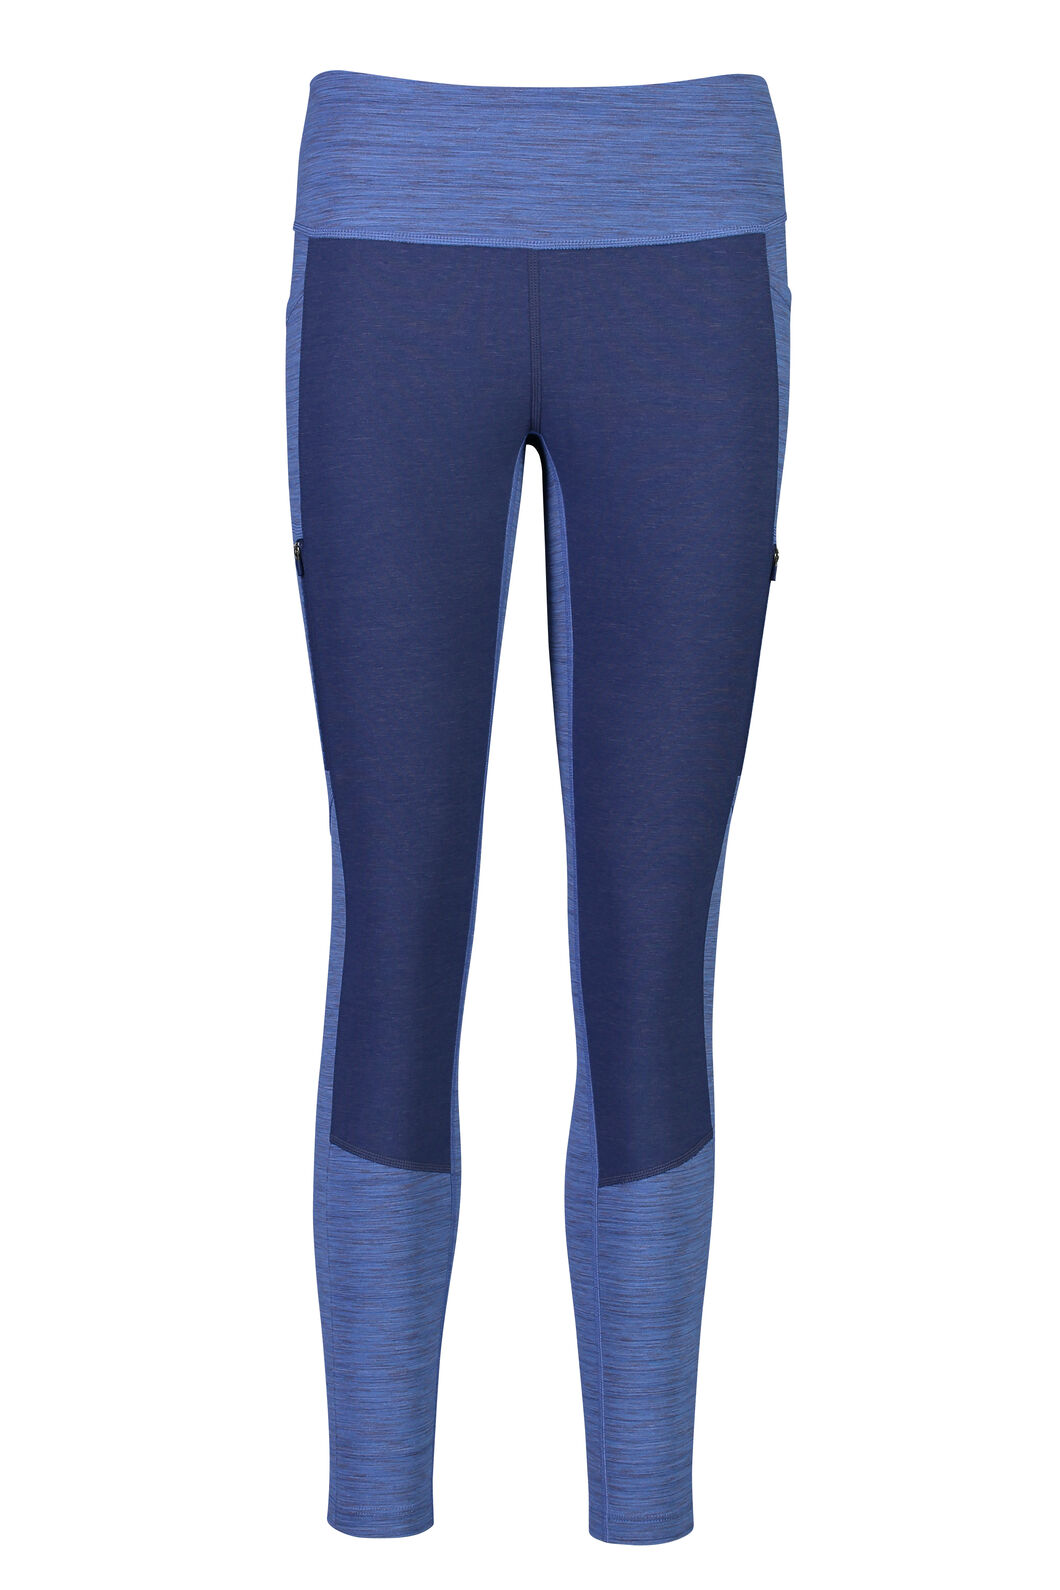 There and Back Tights -Women's, Medieval Blue, hi-res